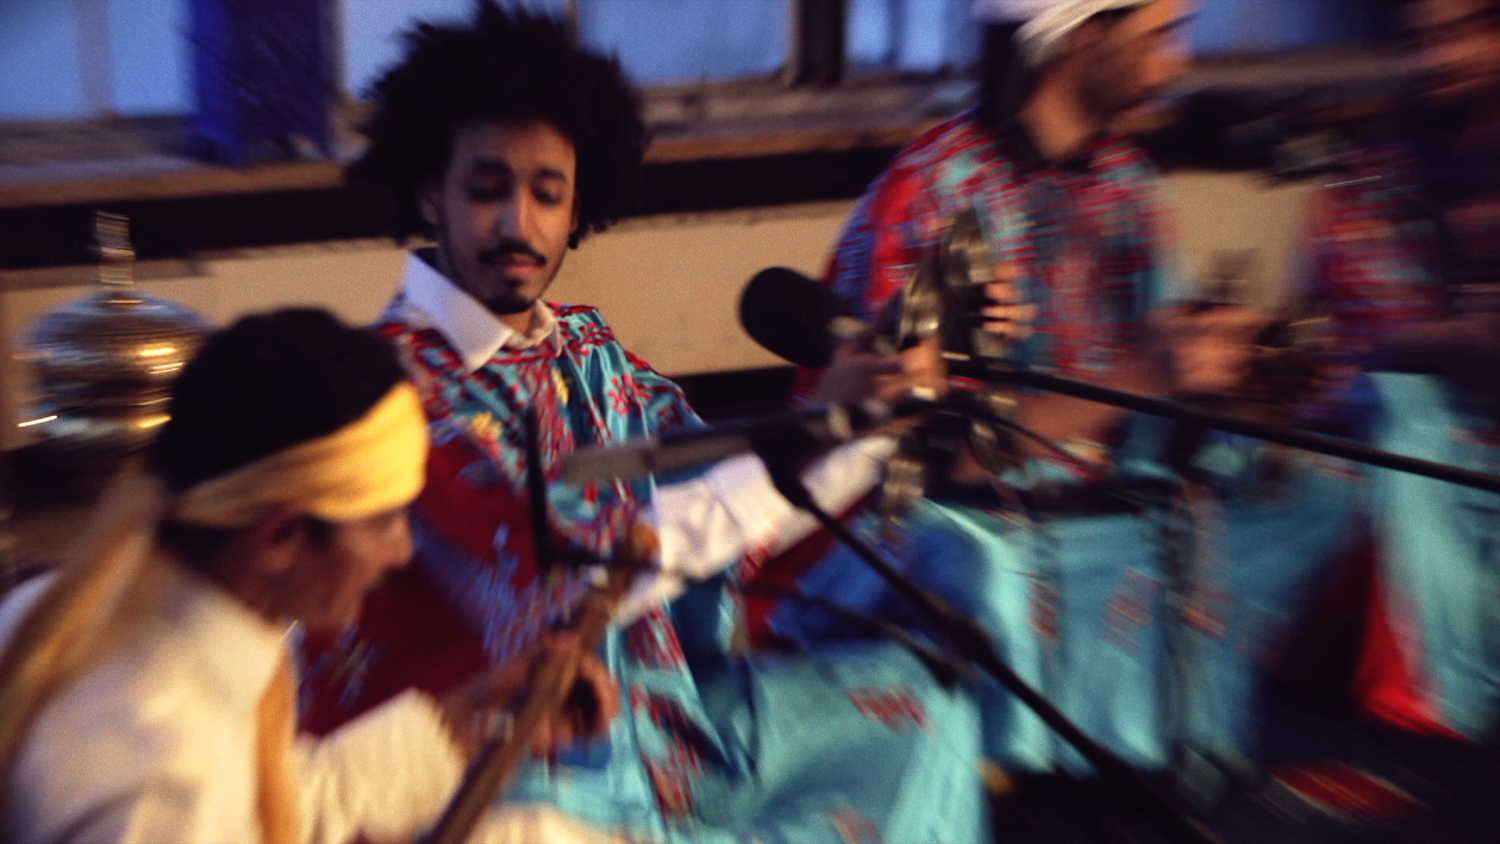 Innov Gnawa - [3] Hammadi - Music Video Screenshot_18 - LR (JPG 1500px 72 DPI).jpg